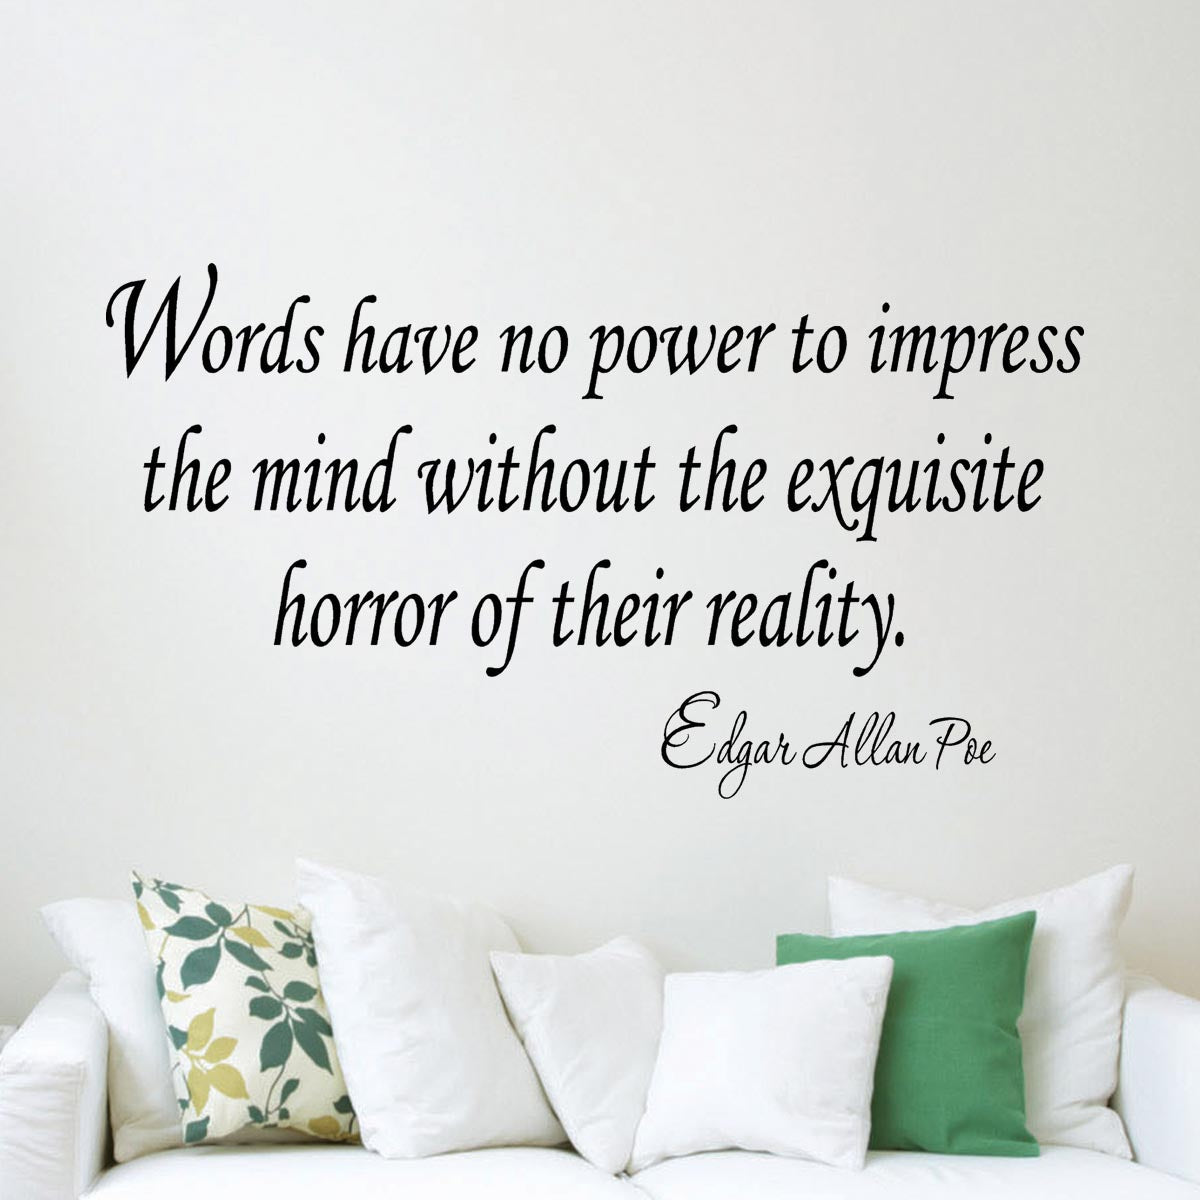 VWAQ Words Have No Power To Impress the Mind Edgar Allan Poe Wall Decal